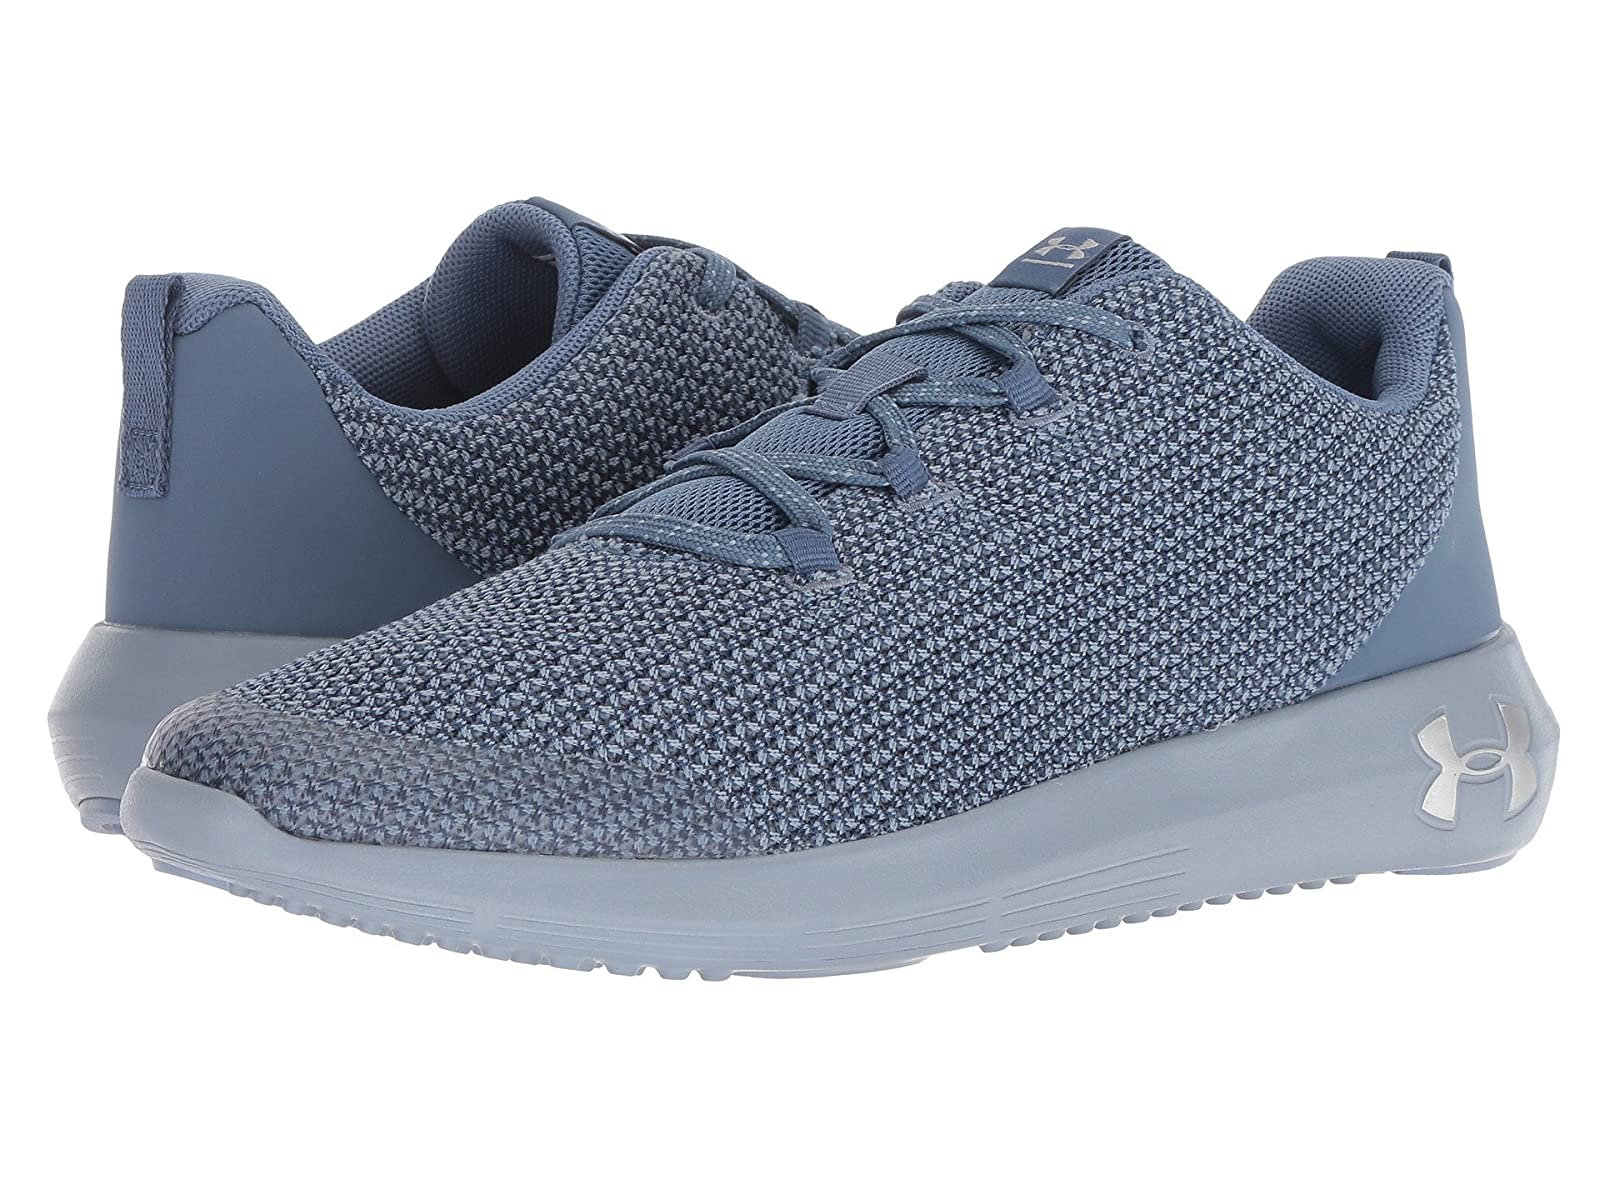 Under Armour Kids UA GGS Ripple (Big Kid)Atmospheric grades have affordable shoes